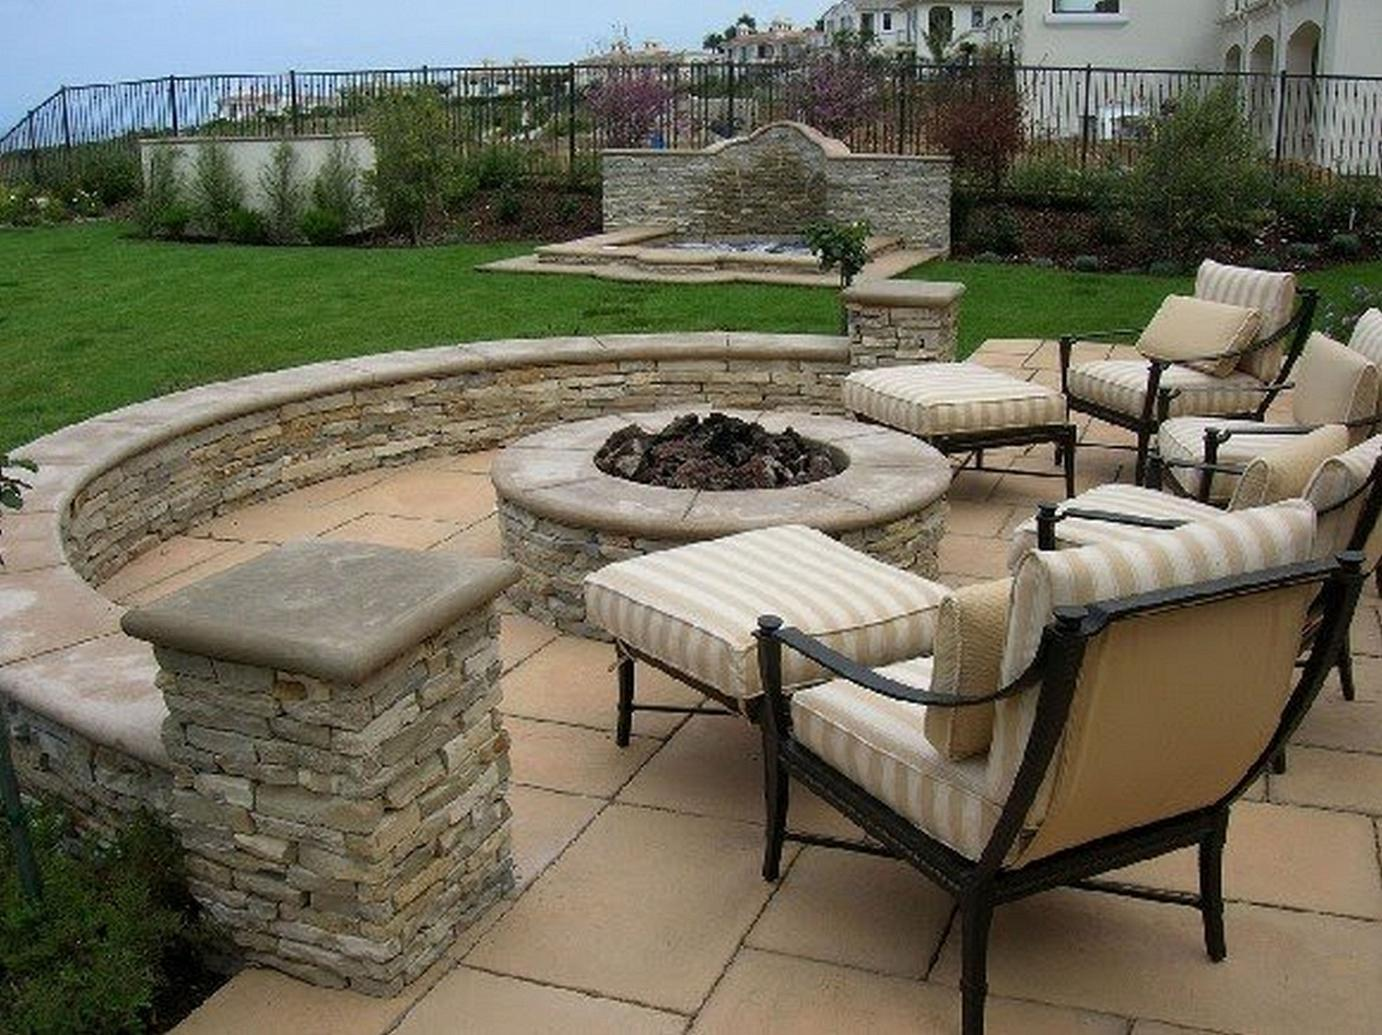 Backyard patio ideas for small spaces large and for Small patio design ideas